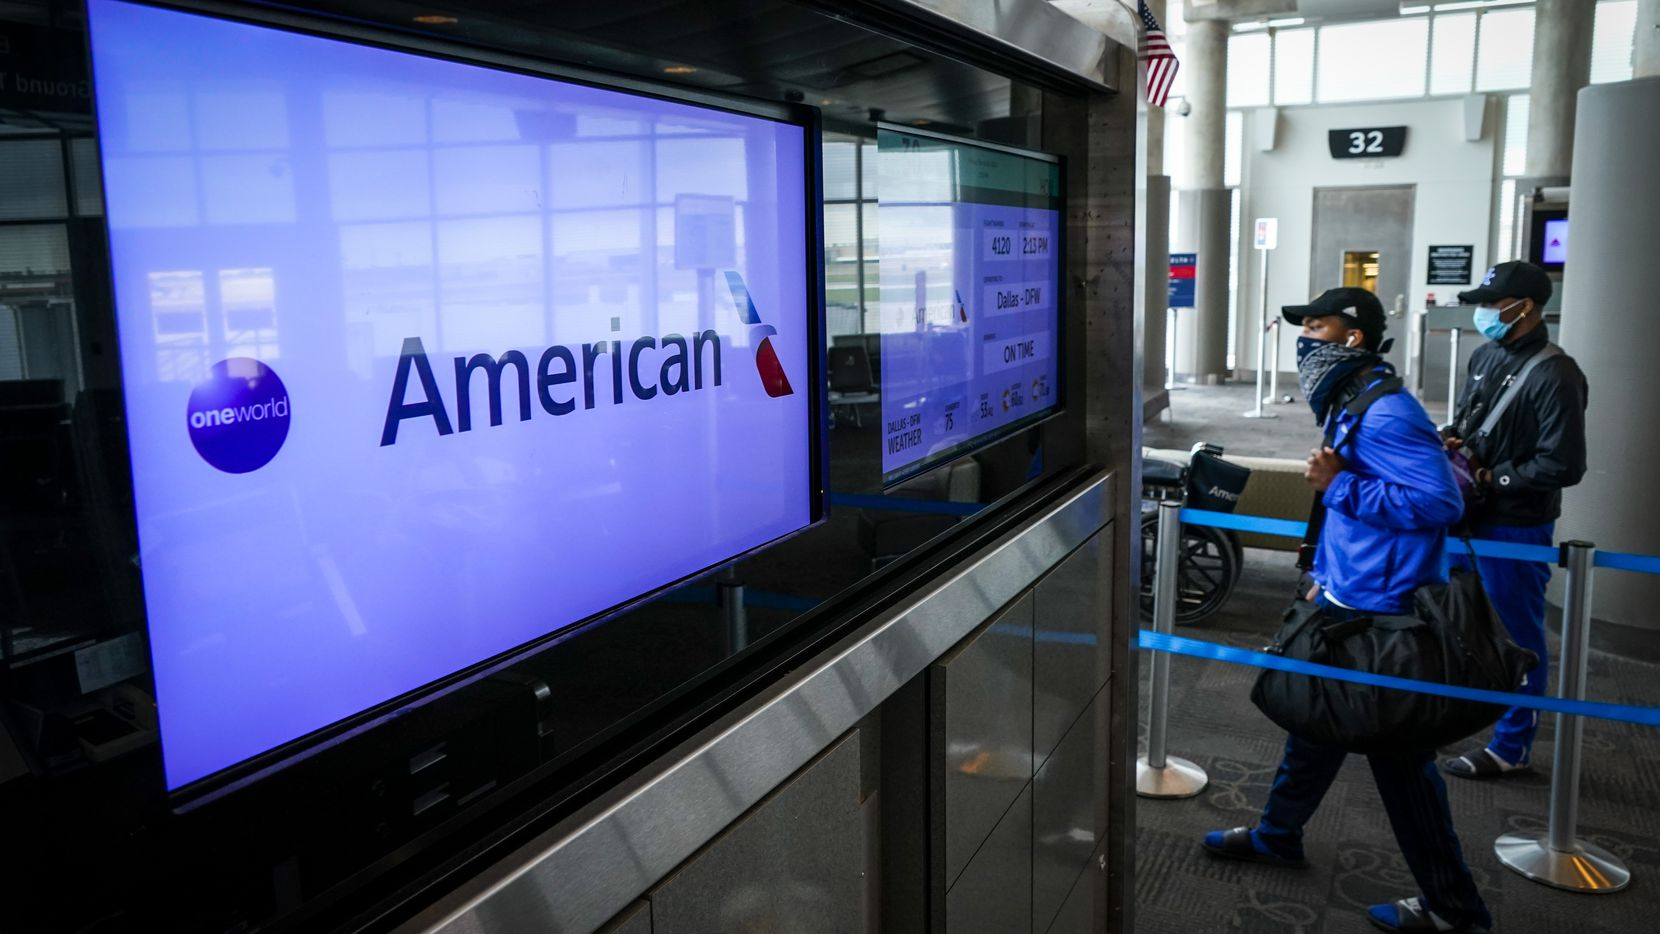 Passengers wearing face masks due to the new coronavirus board an American Airlines flight to DFW Airport at Hobby Airport in Houston on Friday, March 20, 2020. The American Eagle  CRJ-900 regional jet configured to seat 103 passengers carried 19 on the flight.  (Smiley N. Pool/TheDallas Morning News)